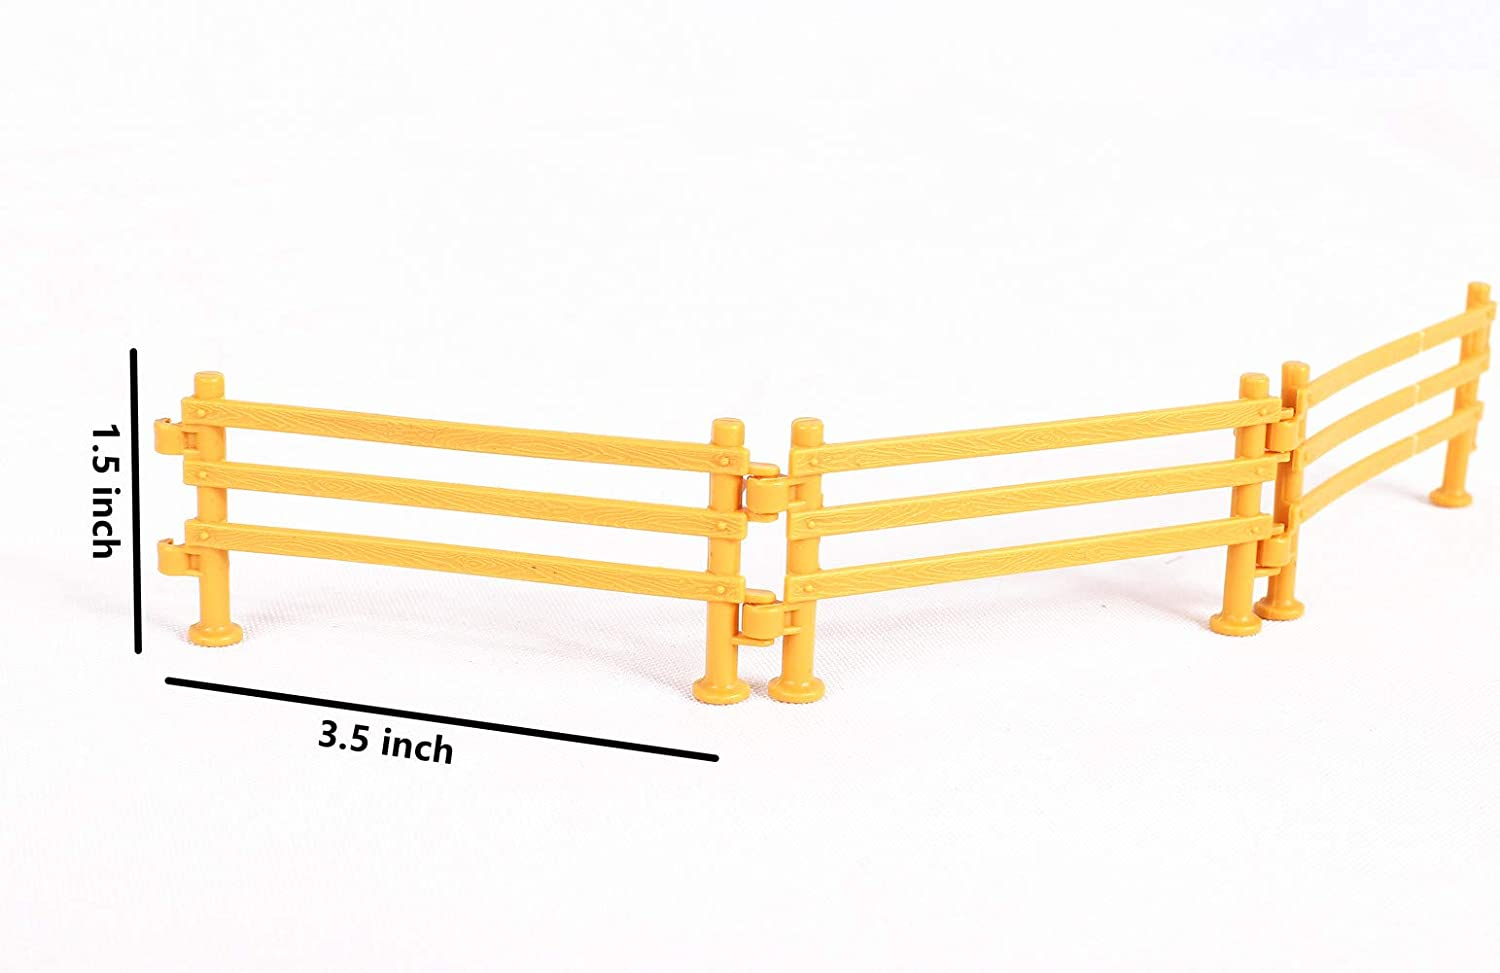 Mini Plastic Garden Fence Toys Farm Animals Horses Figurines YUCAN 50PCS Toys Fence Horse Corral Fencing Accessories Playset F Yellow Fence Panels Cake Toppers for Kids Paddock Toys